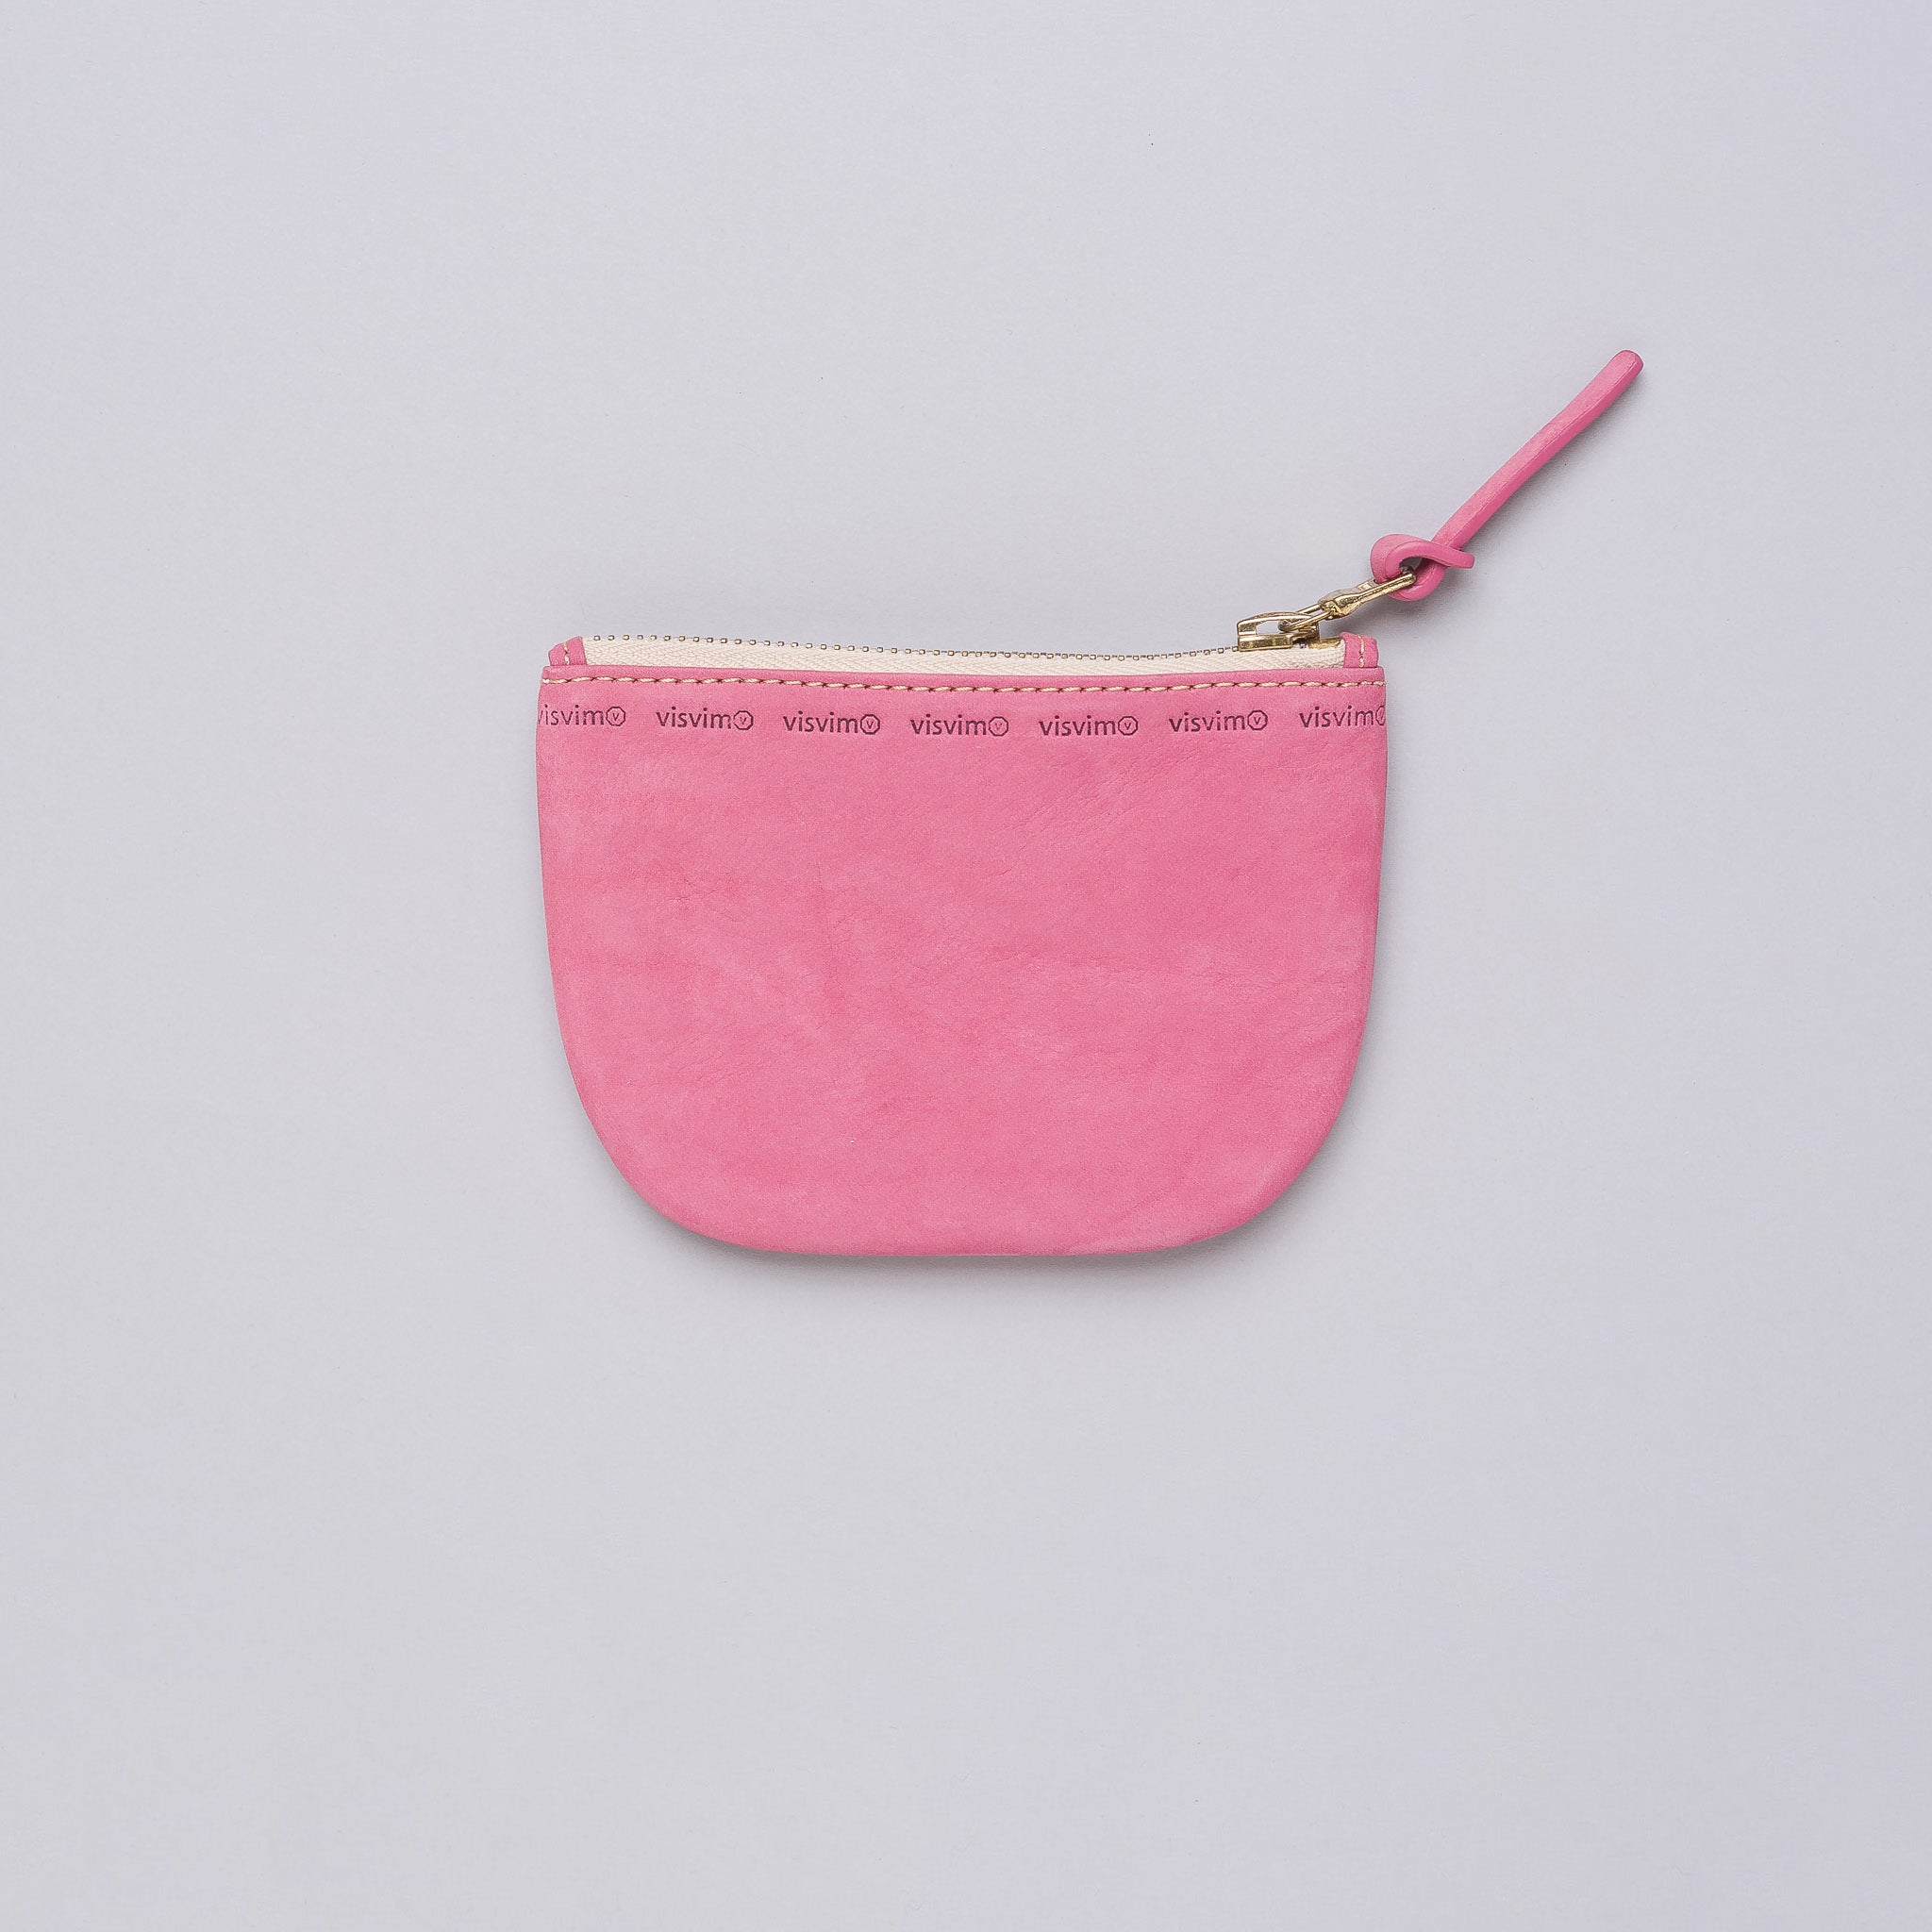 Veggie Wallet in Pink